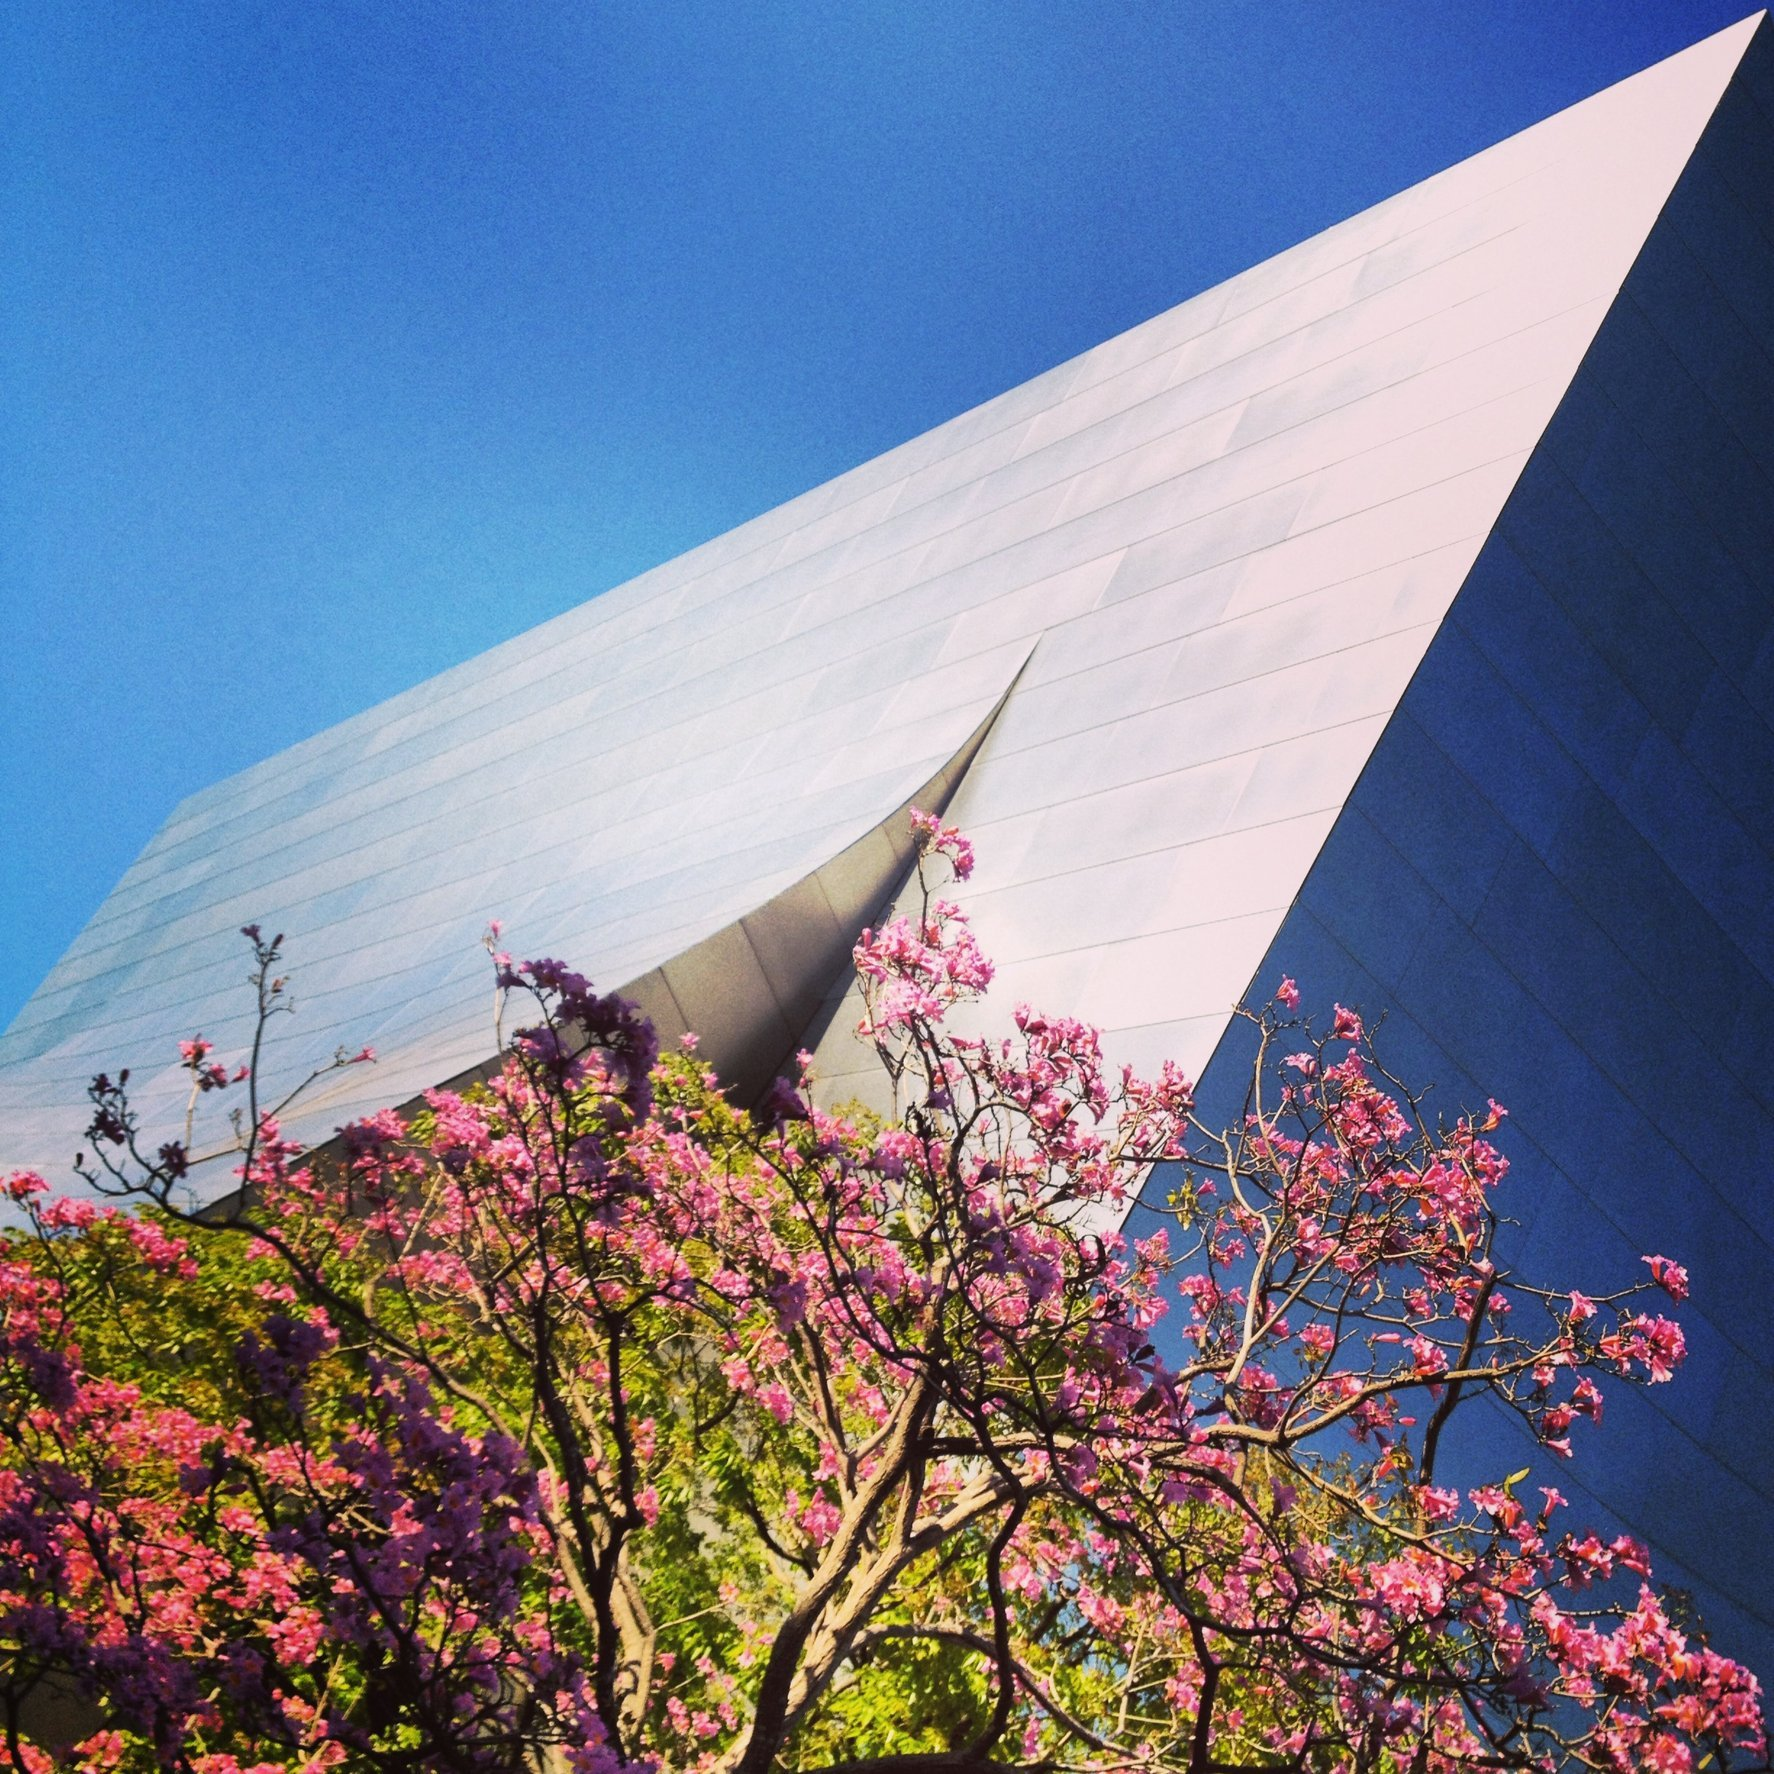 WALT DISNEY CONCERT HALL - ROSE 4